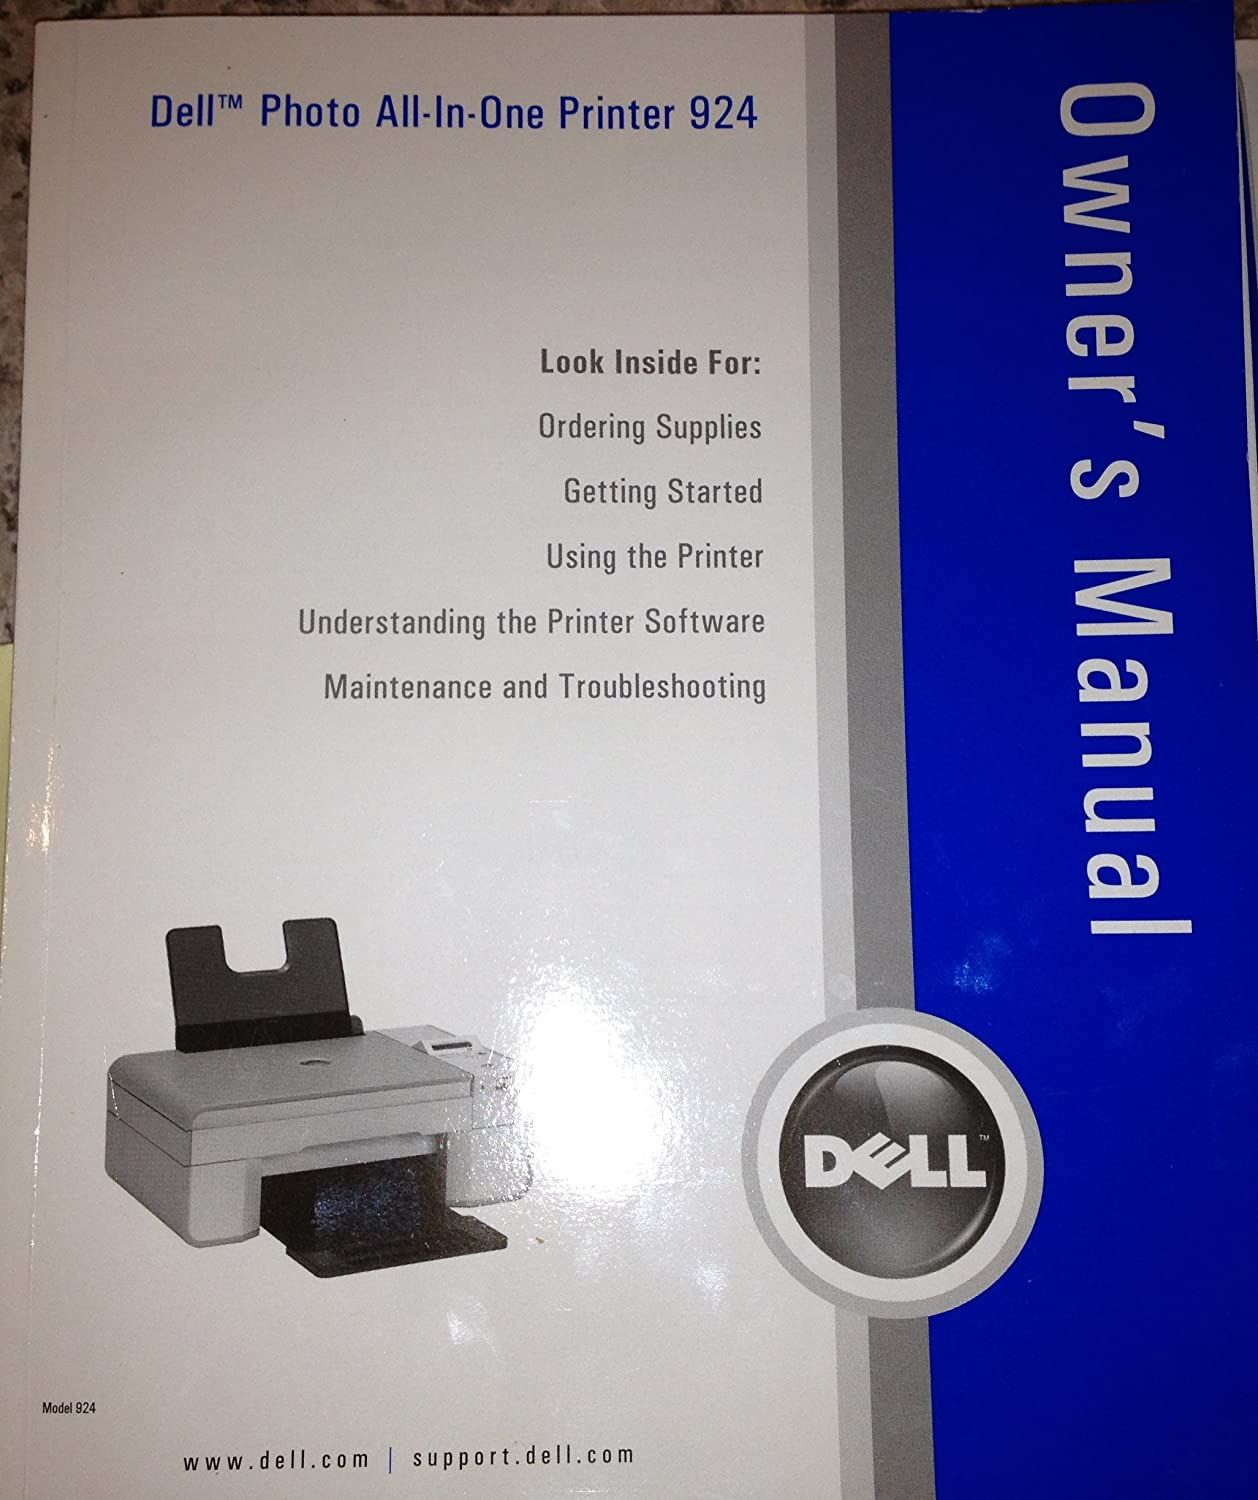 Amazon.com : Dell Photo All-in-one Printer 924 Owner's Manual : Other  Products : Everything Else